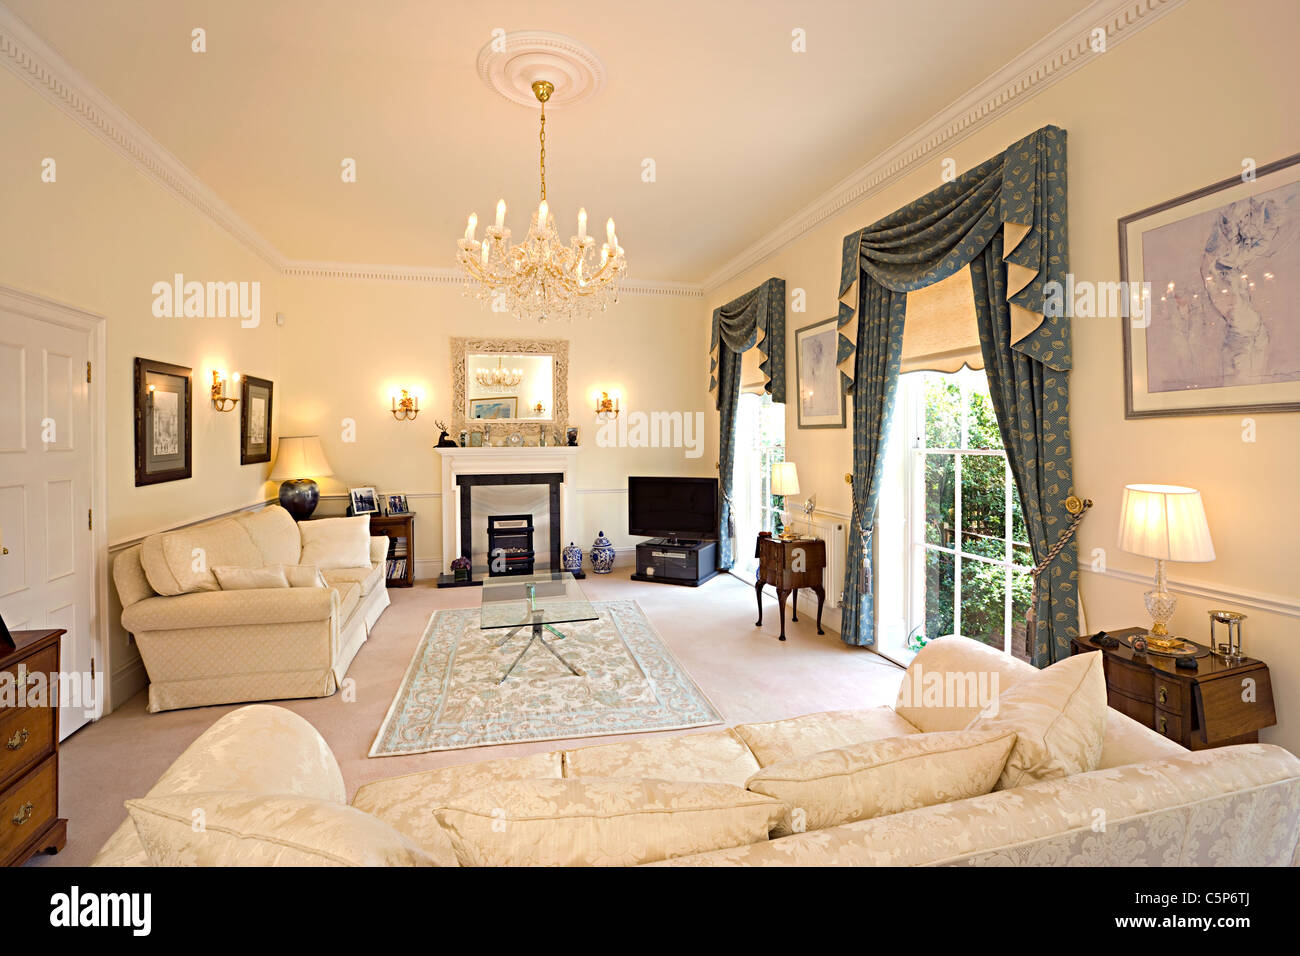 Interior of a traditional english sitting room stock photo for Case stile inglese interni